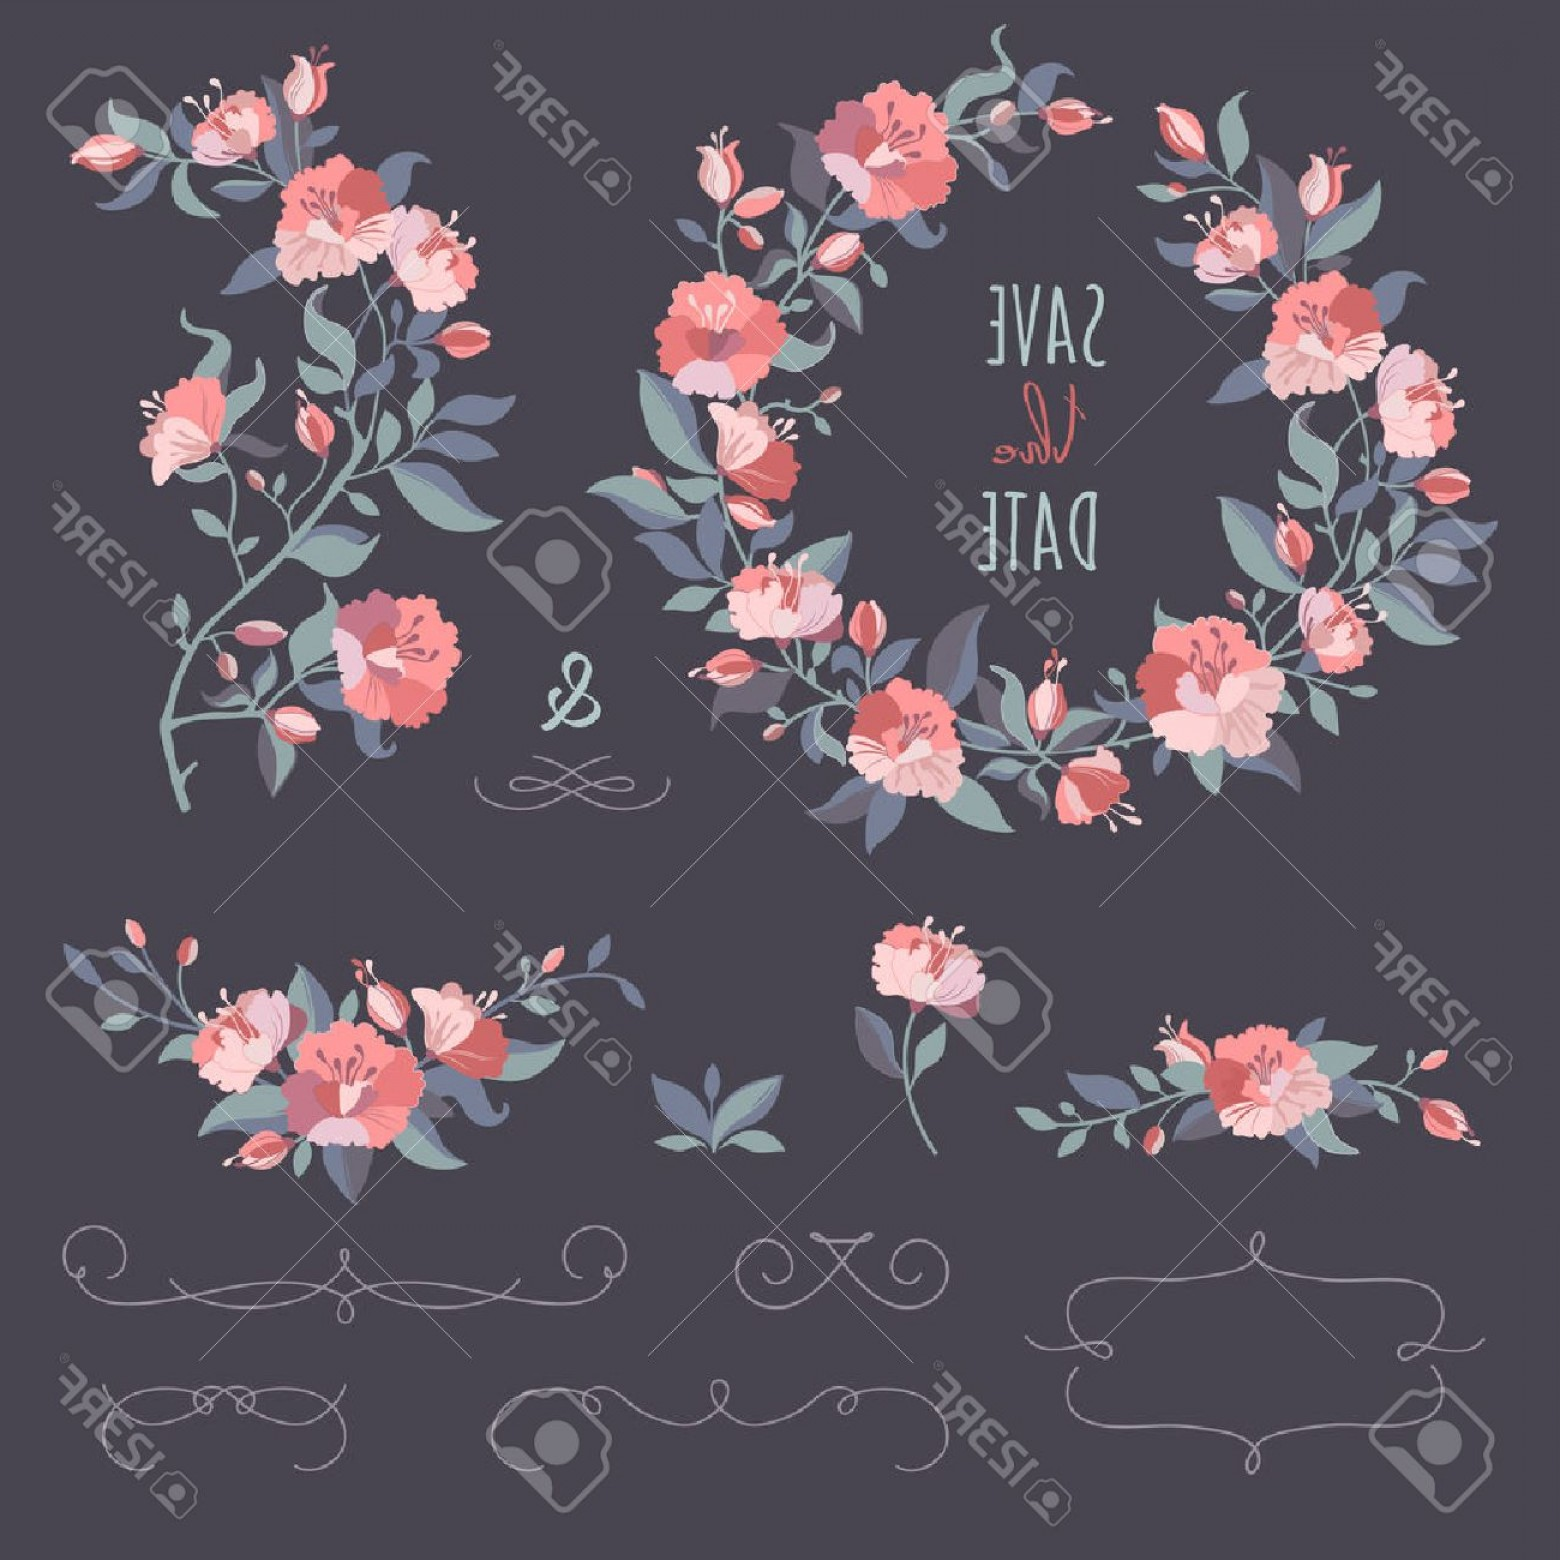 Floral Vector Calligraphy: Photostock Vector Collection Of Floral Wreaths Twigs Border Set Of Hand Drawing Calligraphic Borders Decorative Elemen